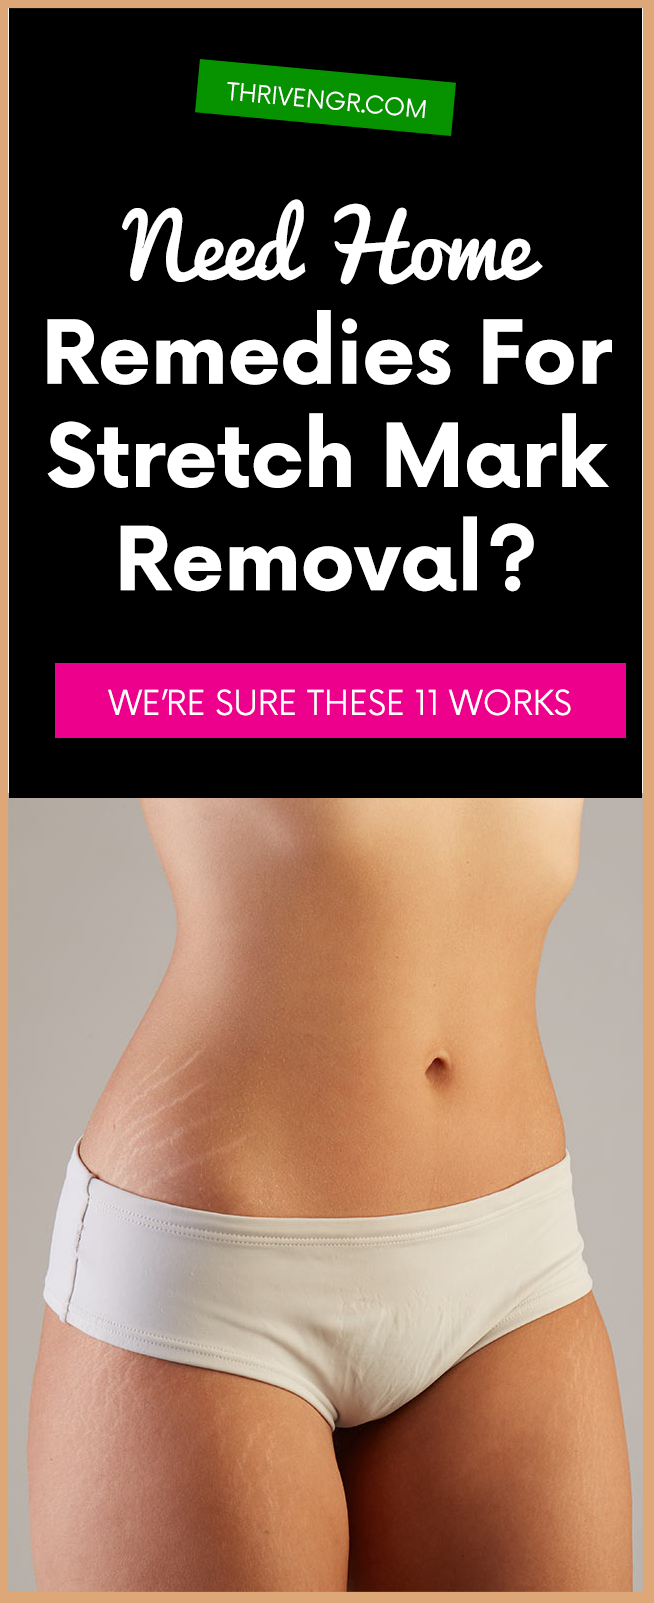 Need Home Remedies Stretch Mark Removal These  Works  PD S